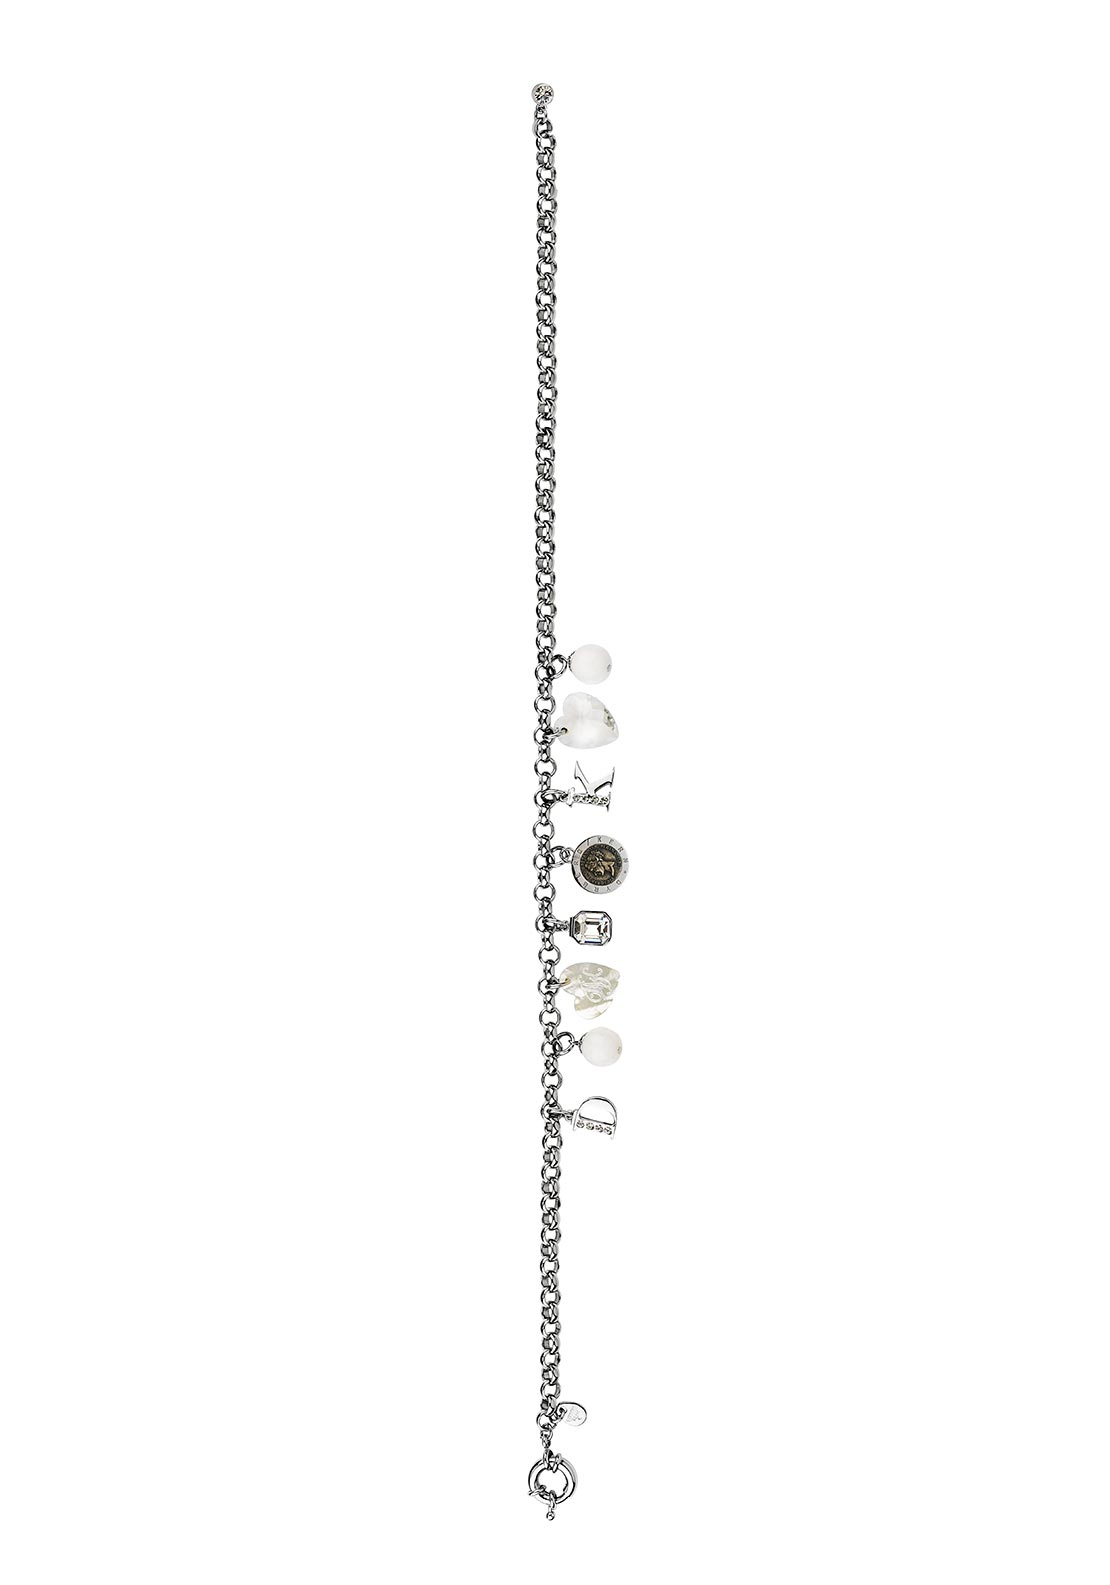 Dyrberg Kern Rosemary Charm Necklace, Silver